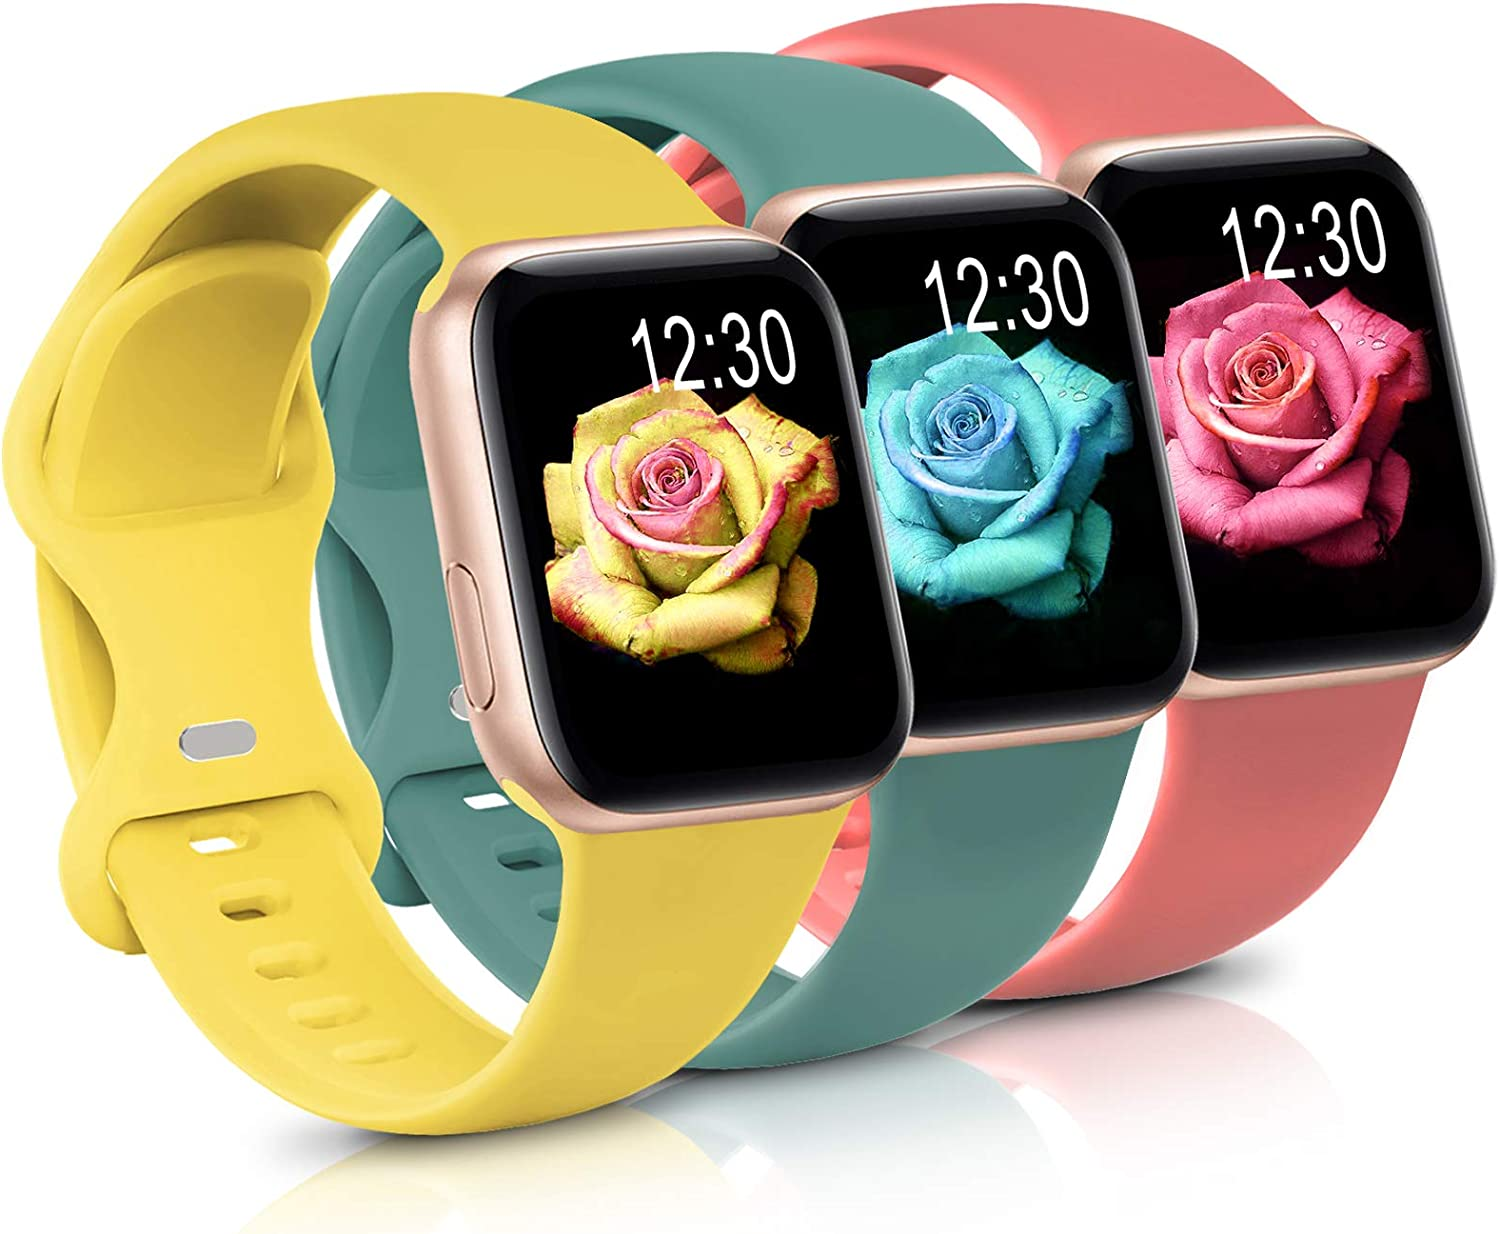 Sport Band Compatible with Apple Watch iWatch Bands 38mm 40mm,Soft Silicone Strap Wristbands for Apple Watch Series 3 6 5 4 2 1 SE Women Men Pack 3,Rose/Cactus/Yellow,38/40mm,S/M